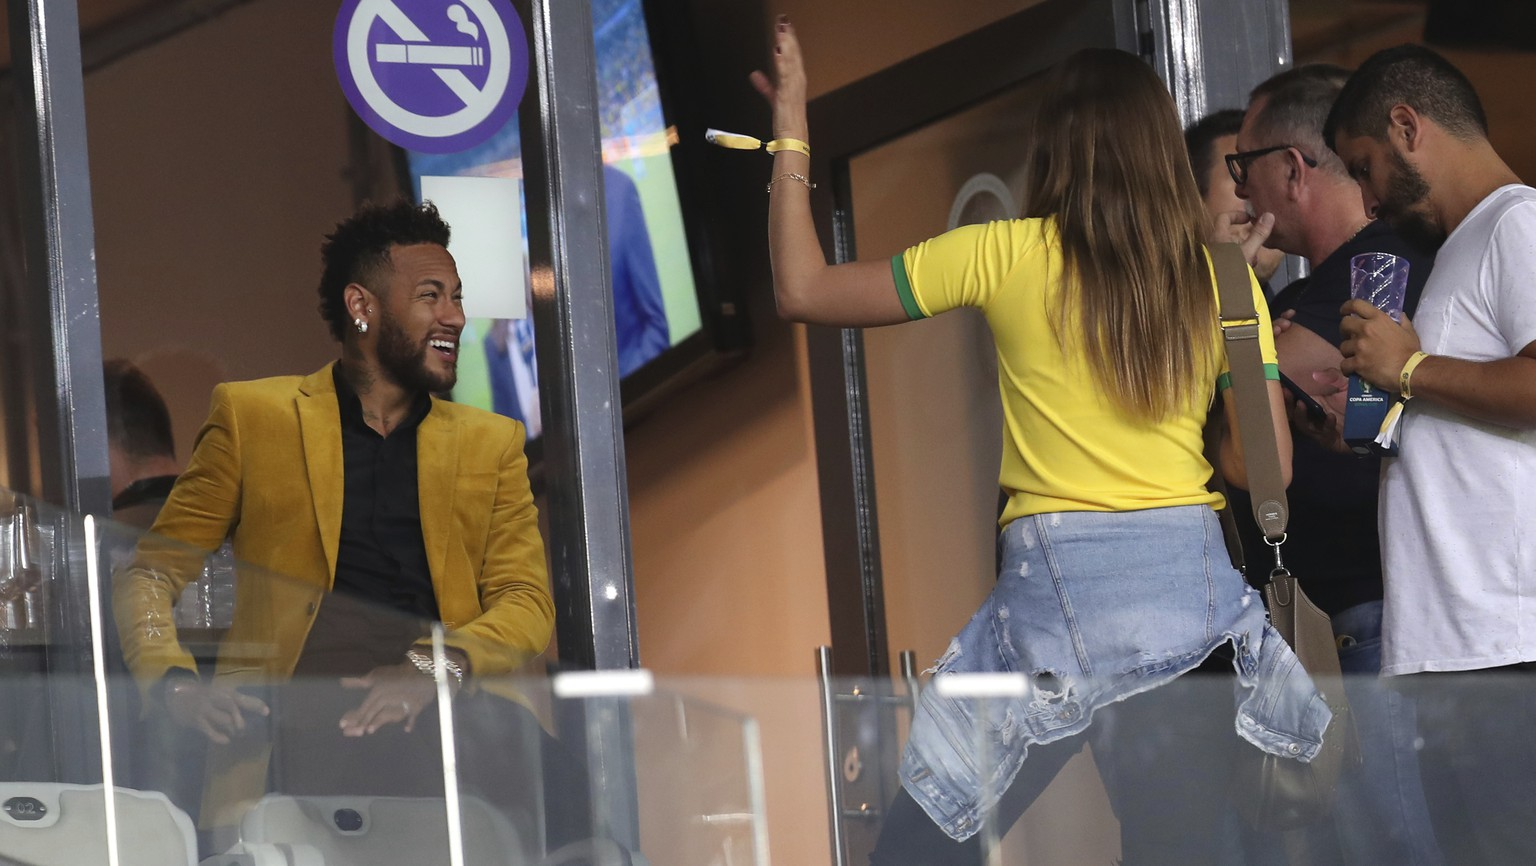 Brazil's soccer player Neymar, left, is seen before a Copa America semifinal soccer match between Brazil and Argentina at the Mineirao stadium in Belo Horizonte, Brazil, Tuesday, July 2, 2019. (AP Photo/Natacha Pisarenko)